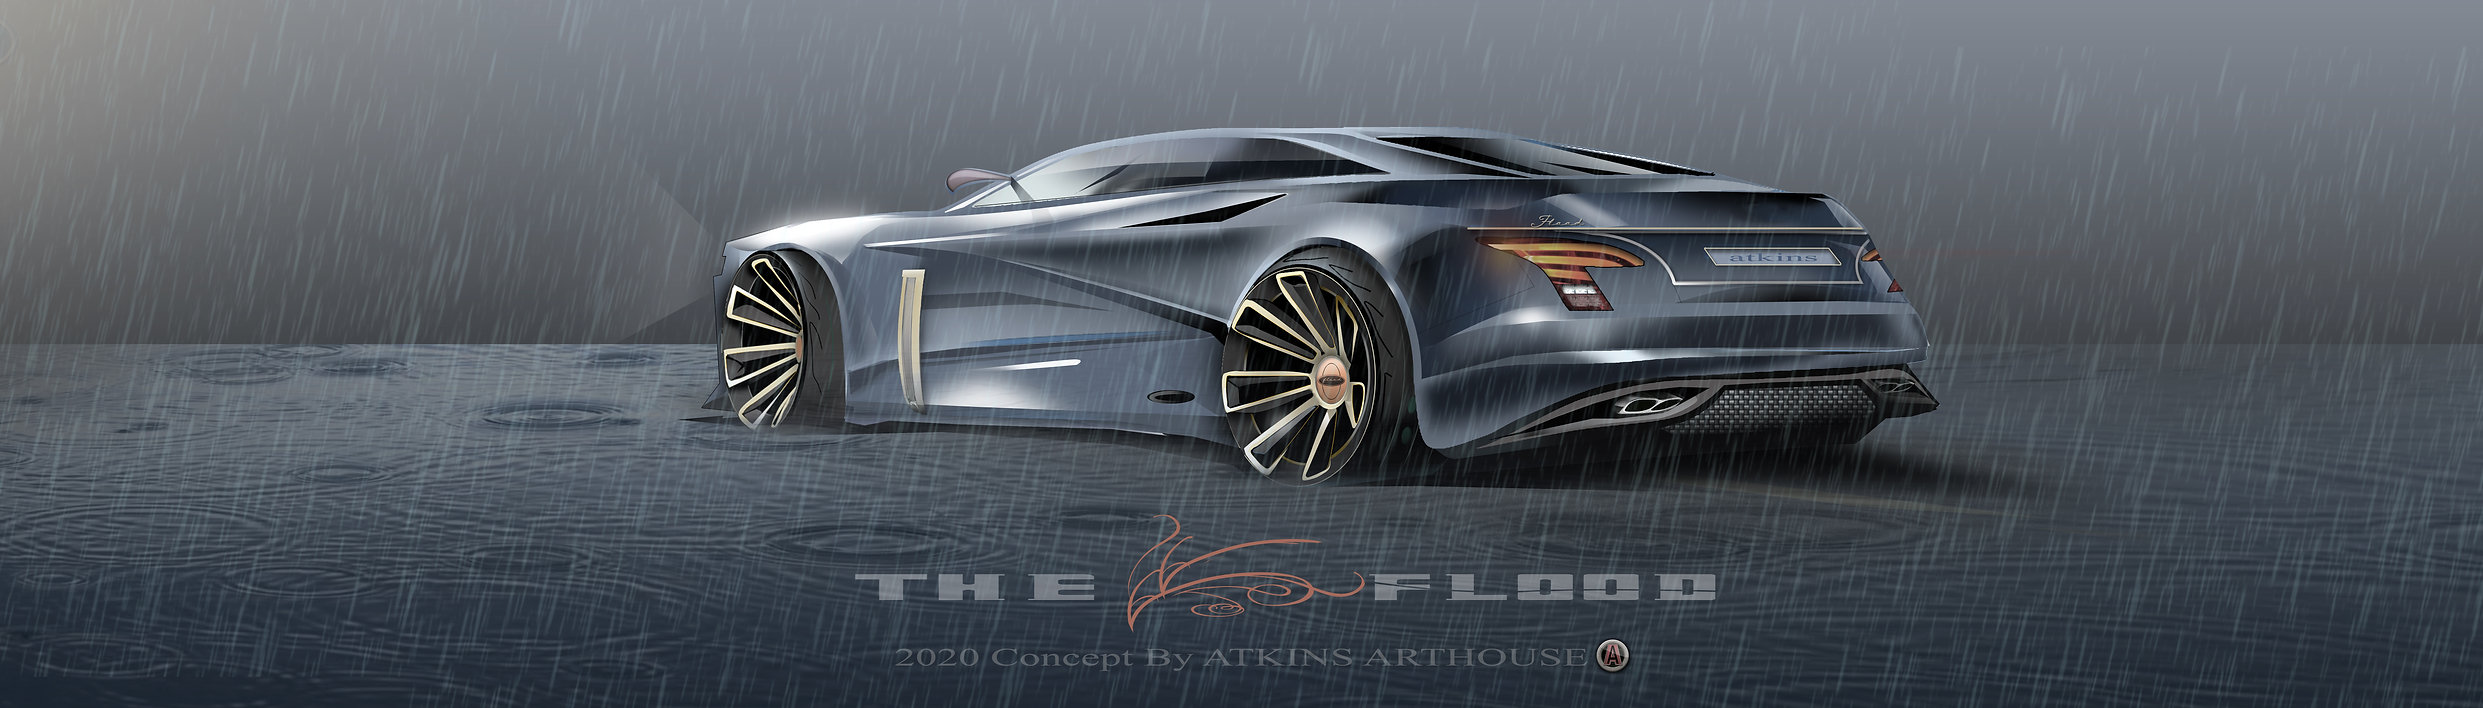 Ford concept.jpg